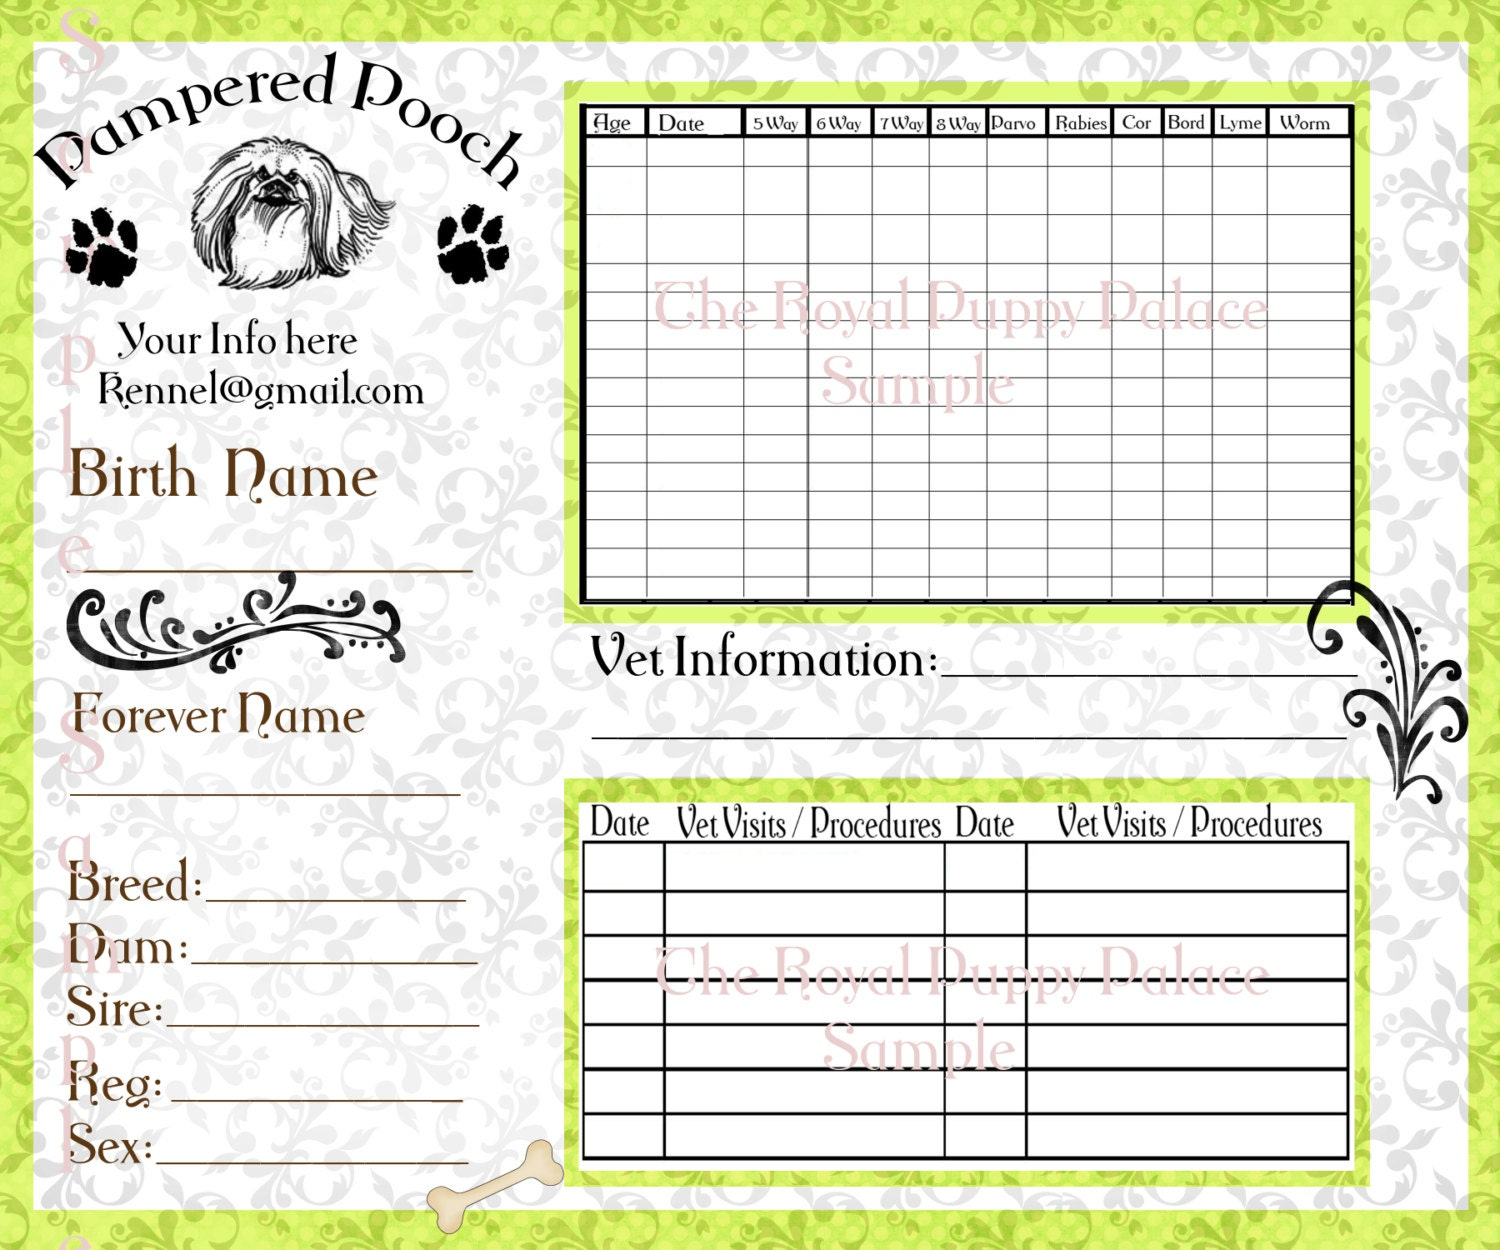 This is a picture of Modest Printable Dog Vaccination Record